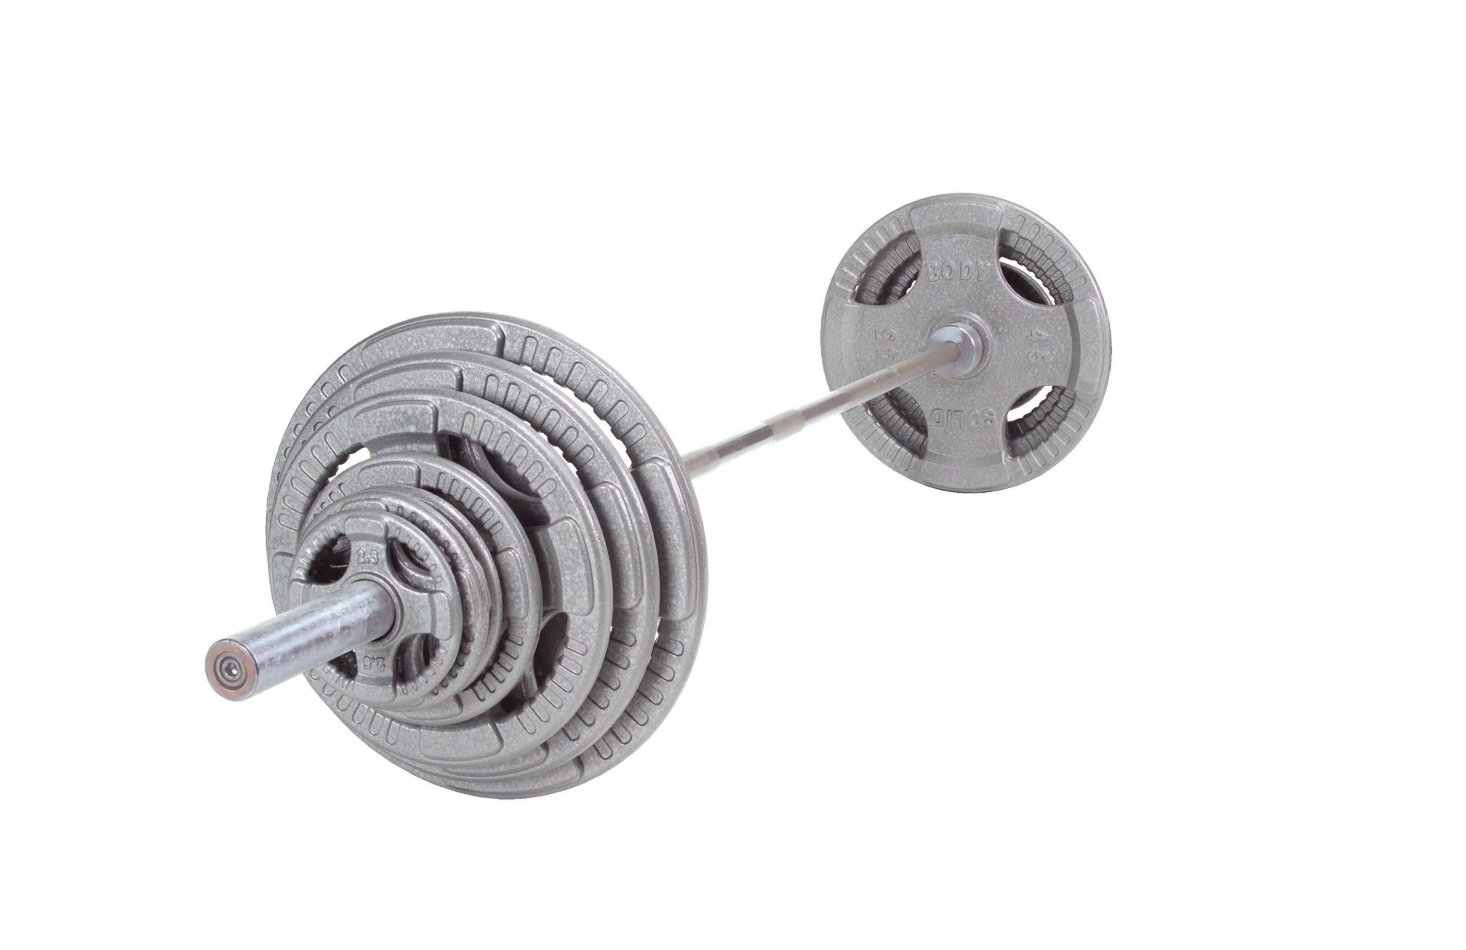 Body-Solid Steel Grip Olympic Weight Plate Set with Chrome Bar - New 400 lbs